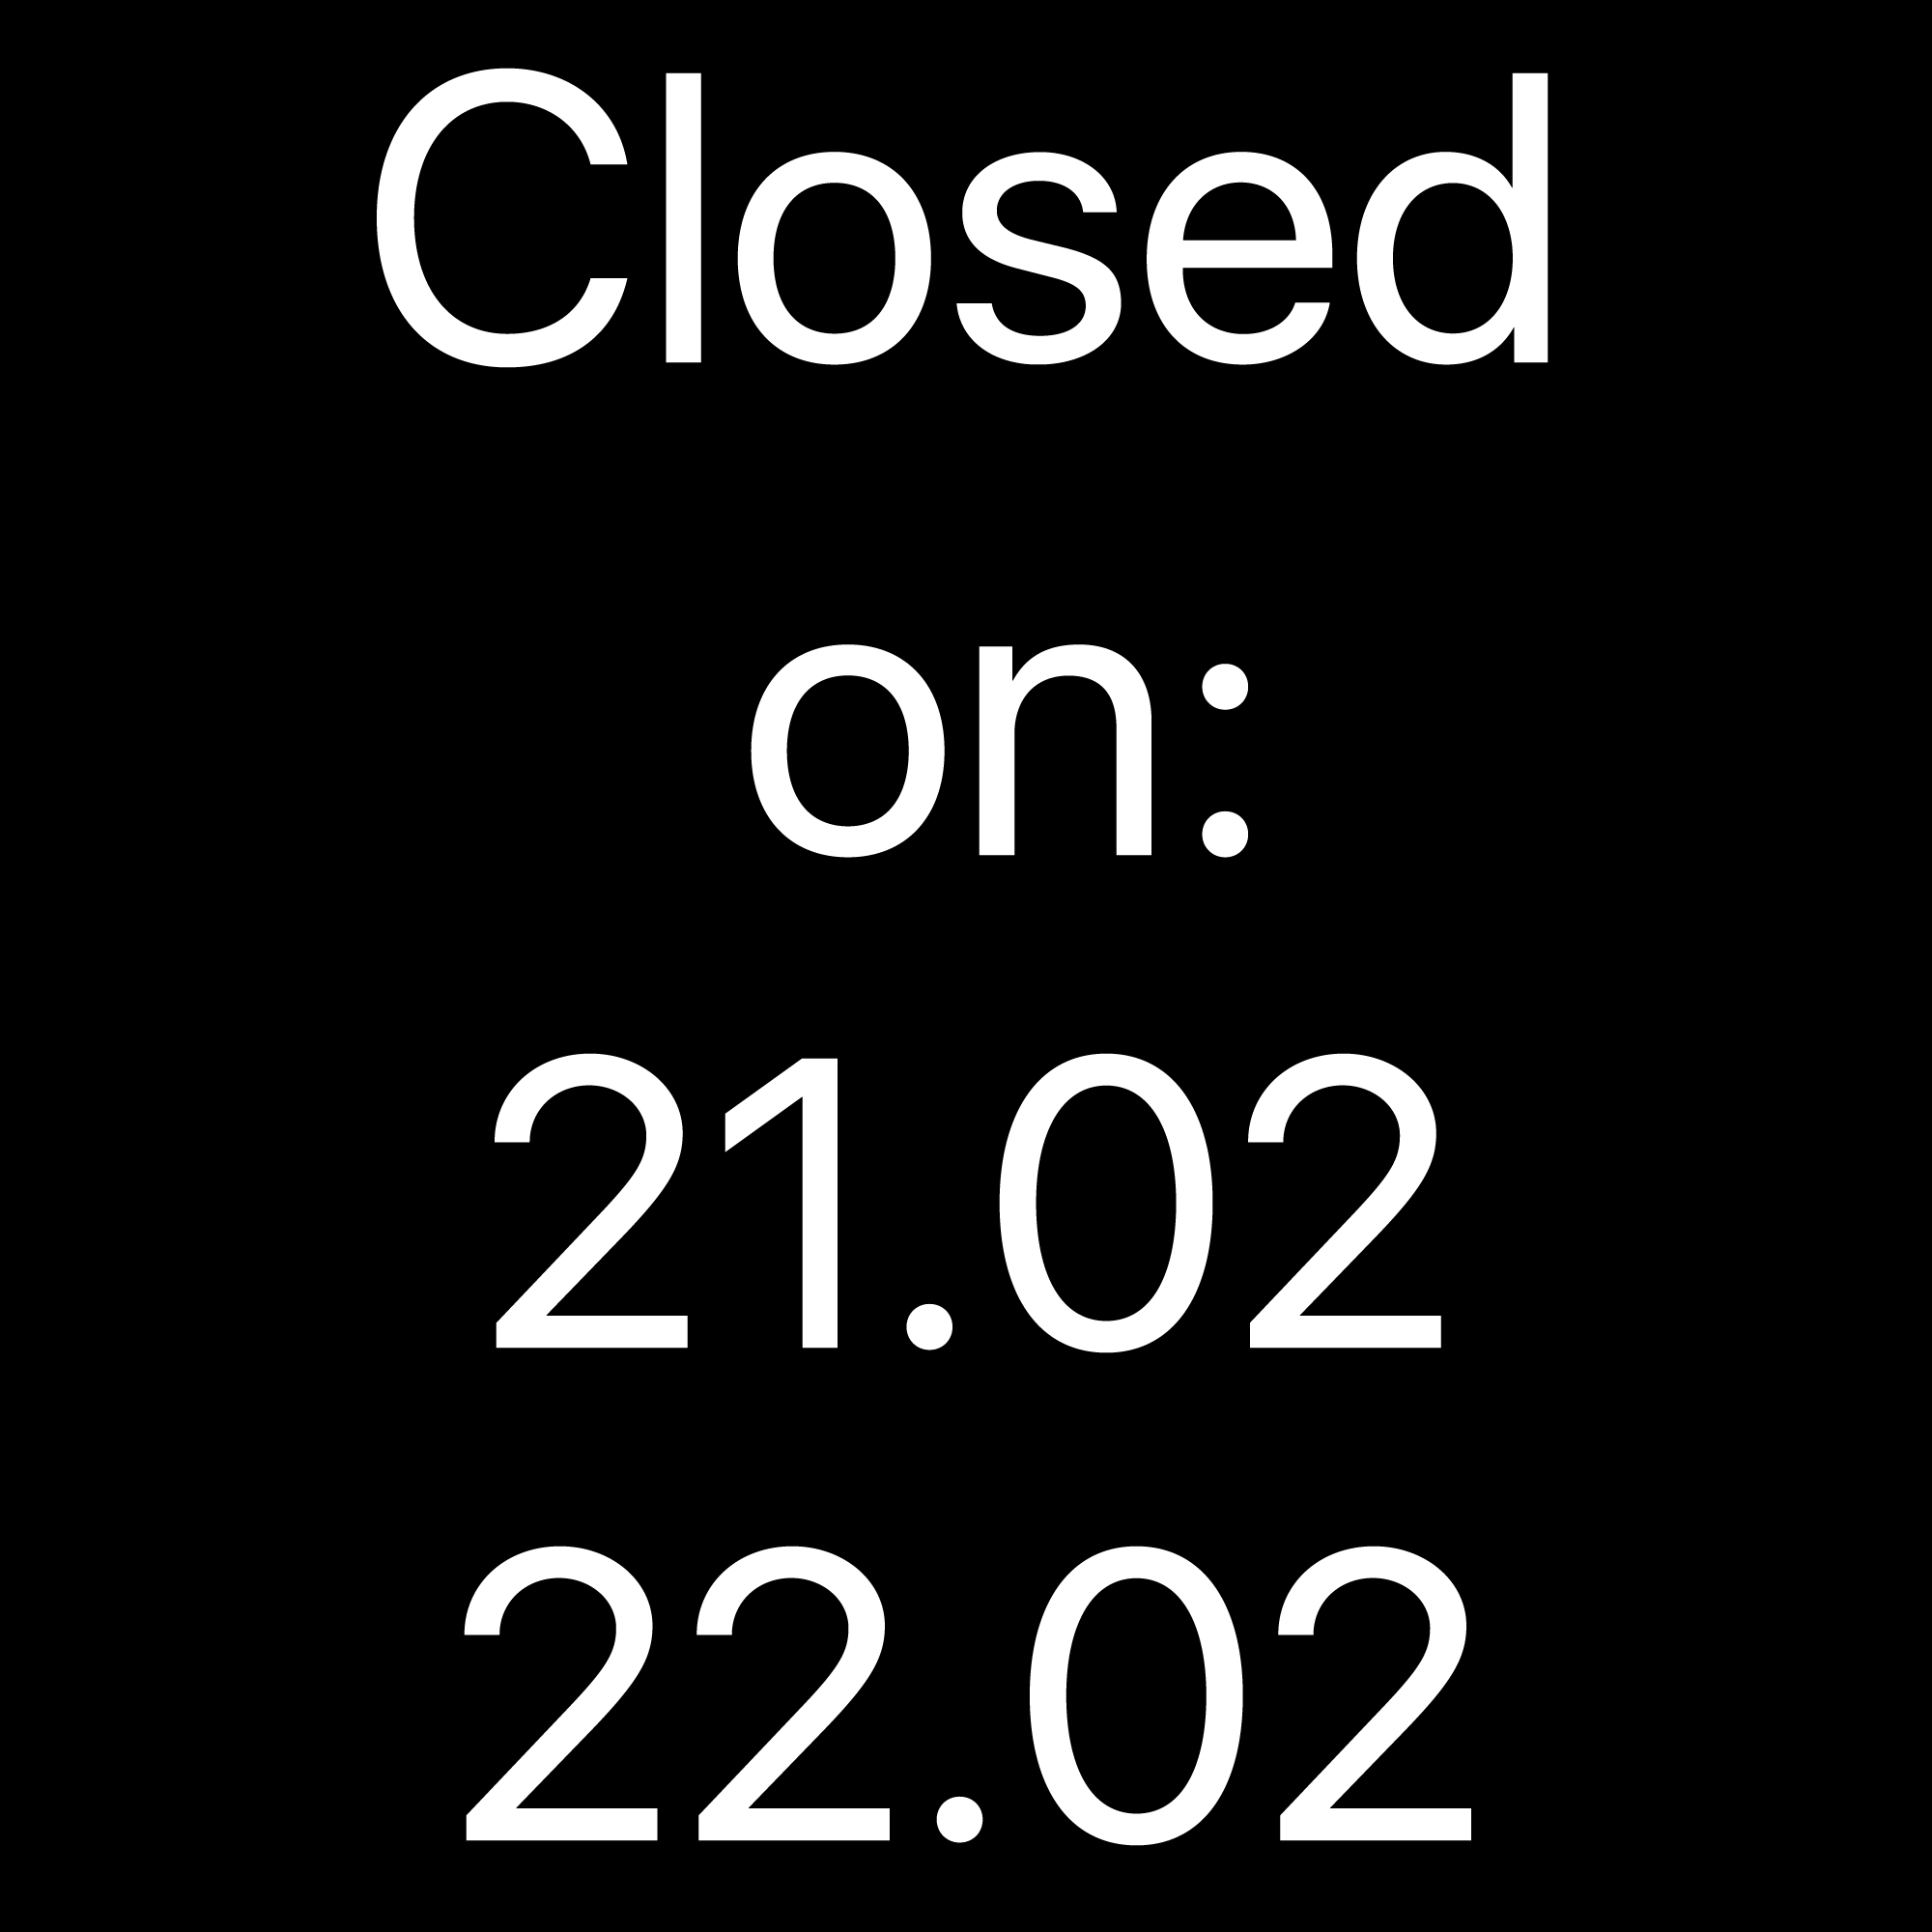 Closed for 2 days